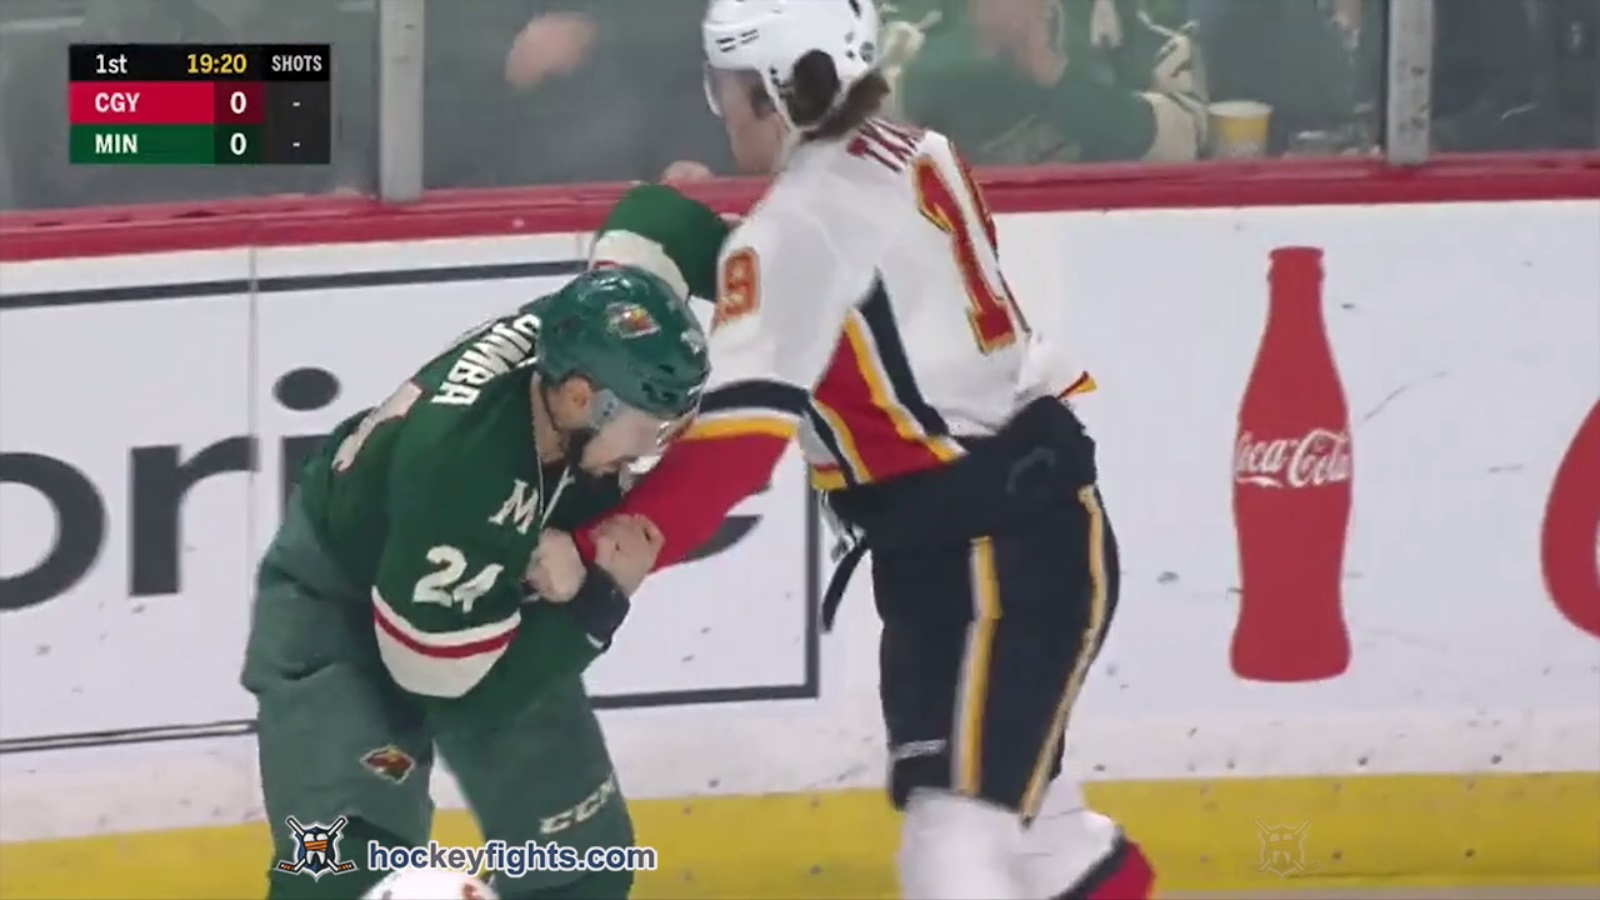 Mathew Dumba vs. Matthew Tkachuk